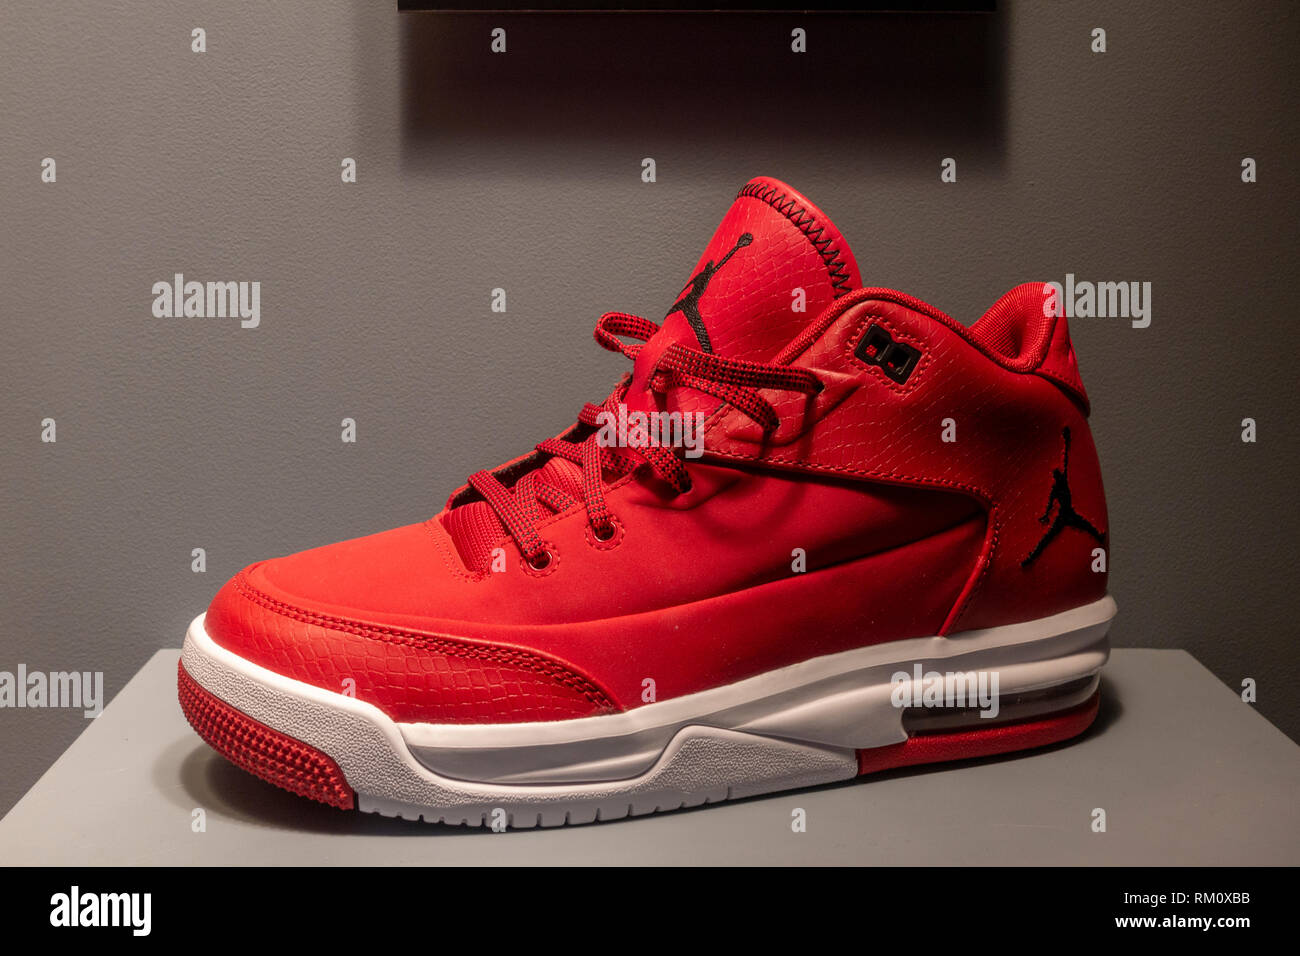 newest 022ec 35d55 A fake Nike Air Jordan high-top shoe on the Fake or Real display,